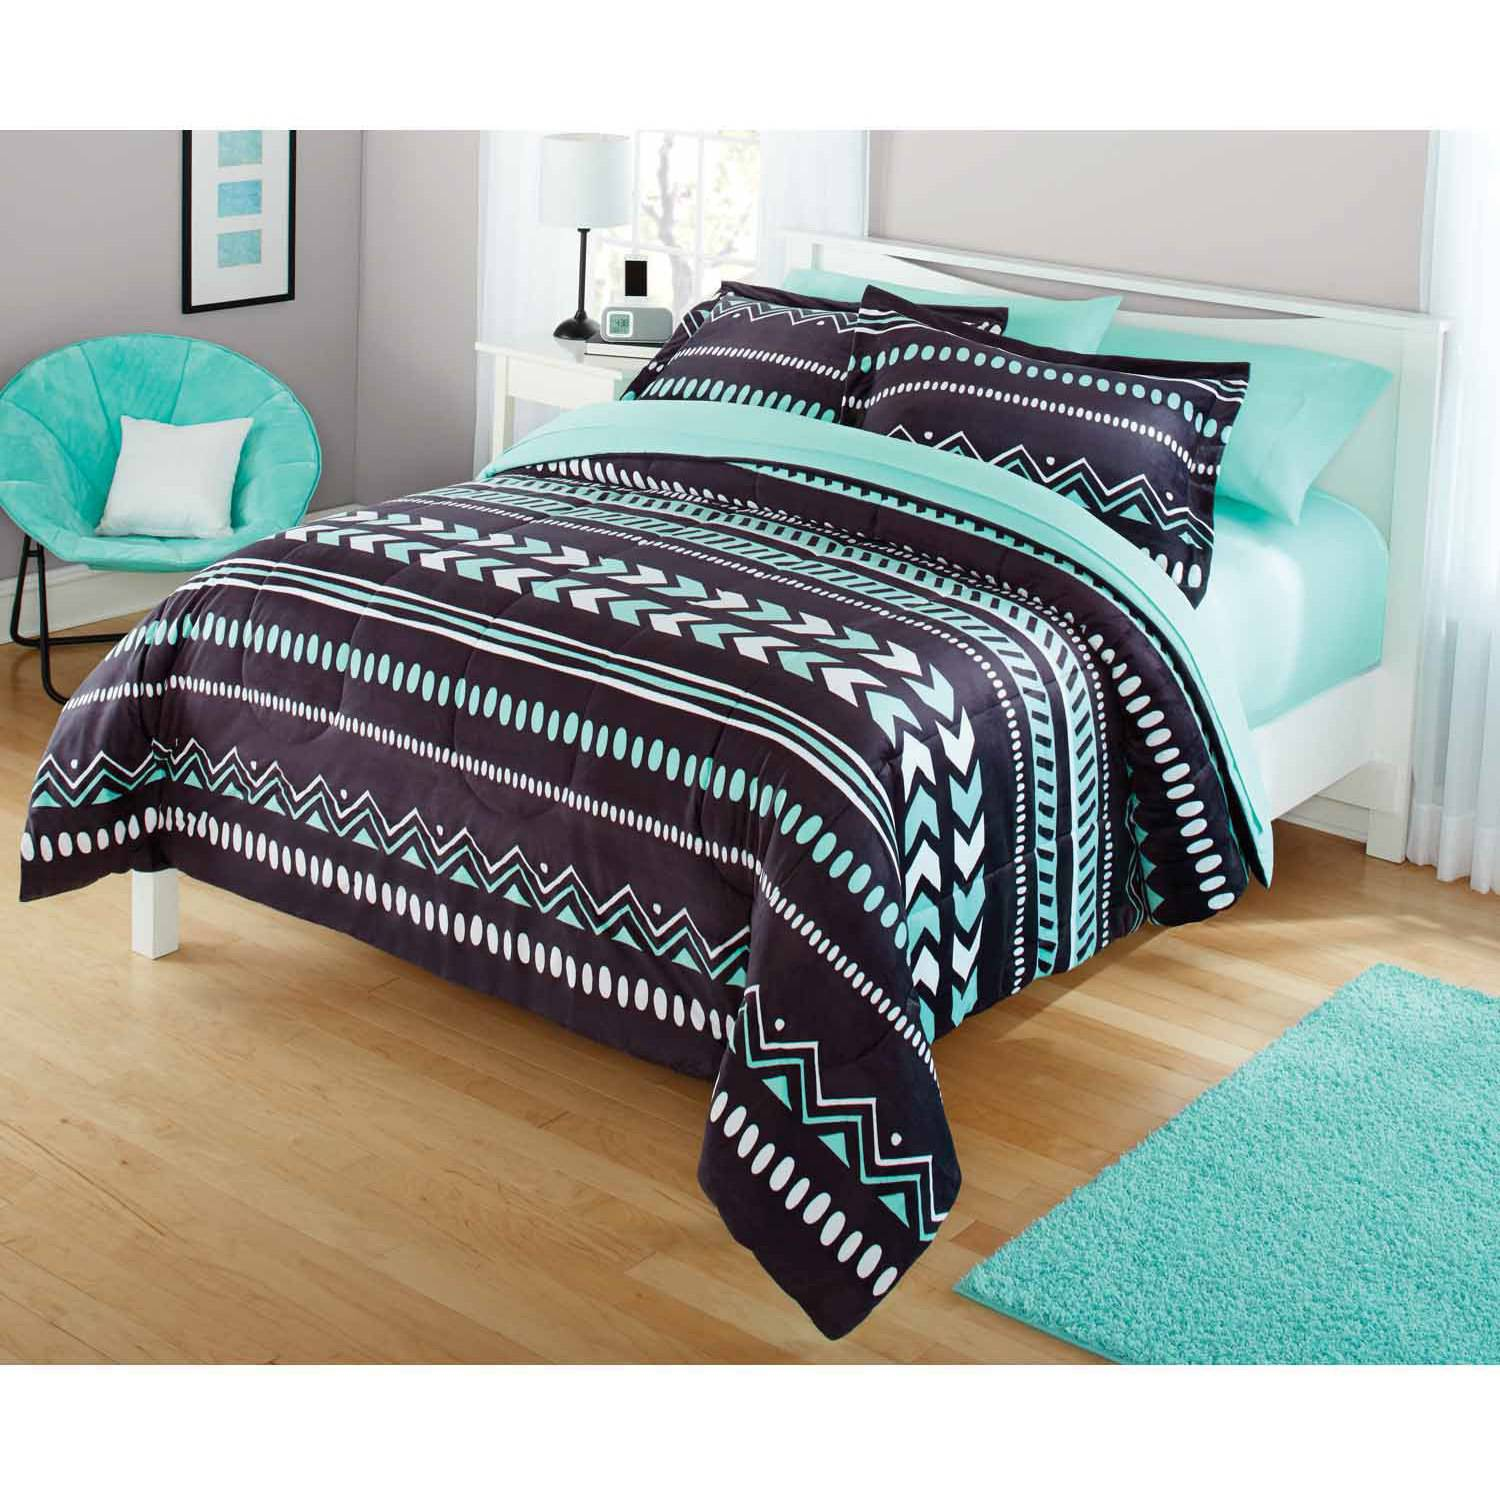 Your Zone Tribal Bedding Comforter Set